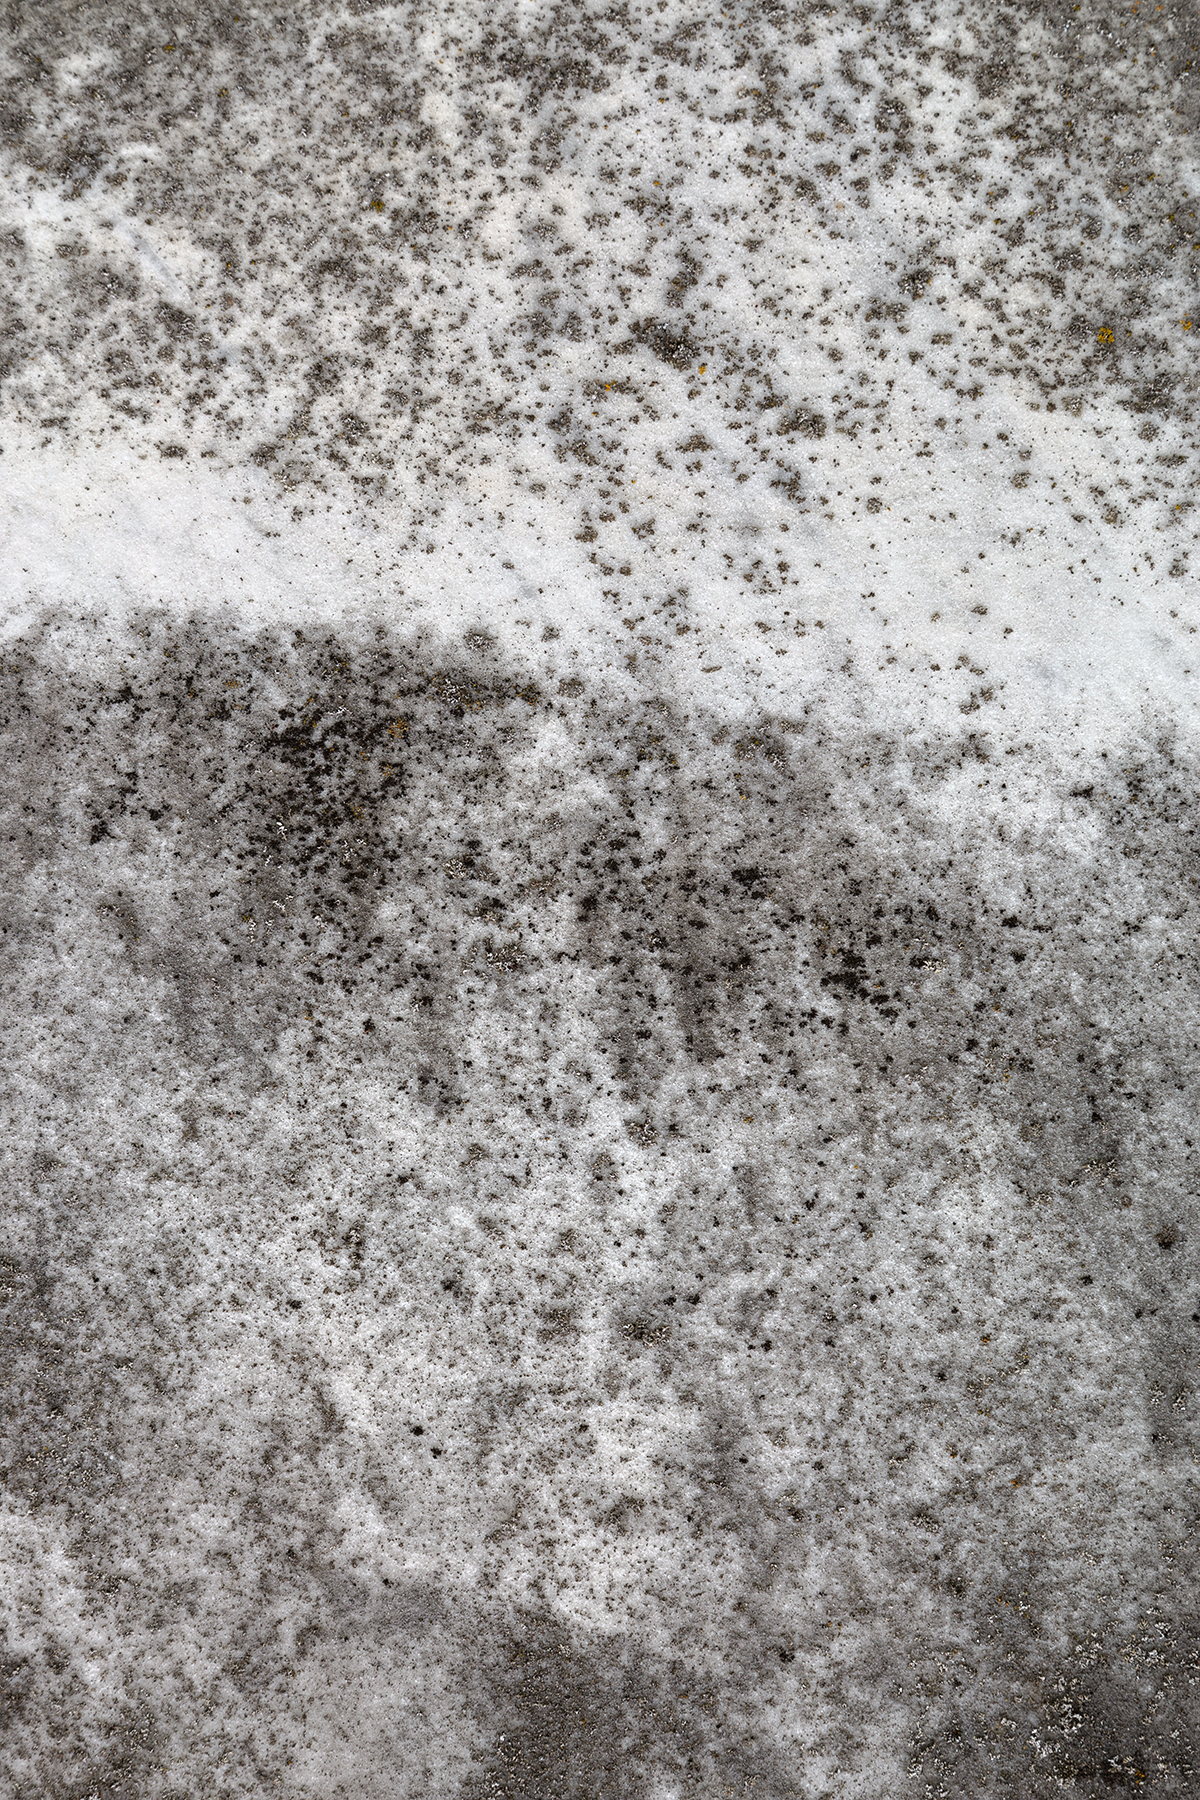 Grunge stone texture - hdr photo